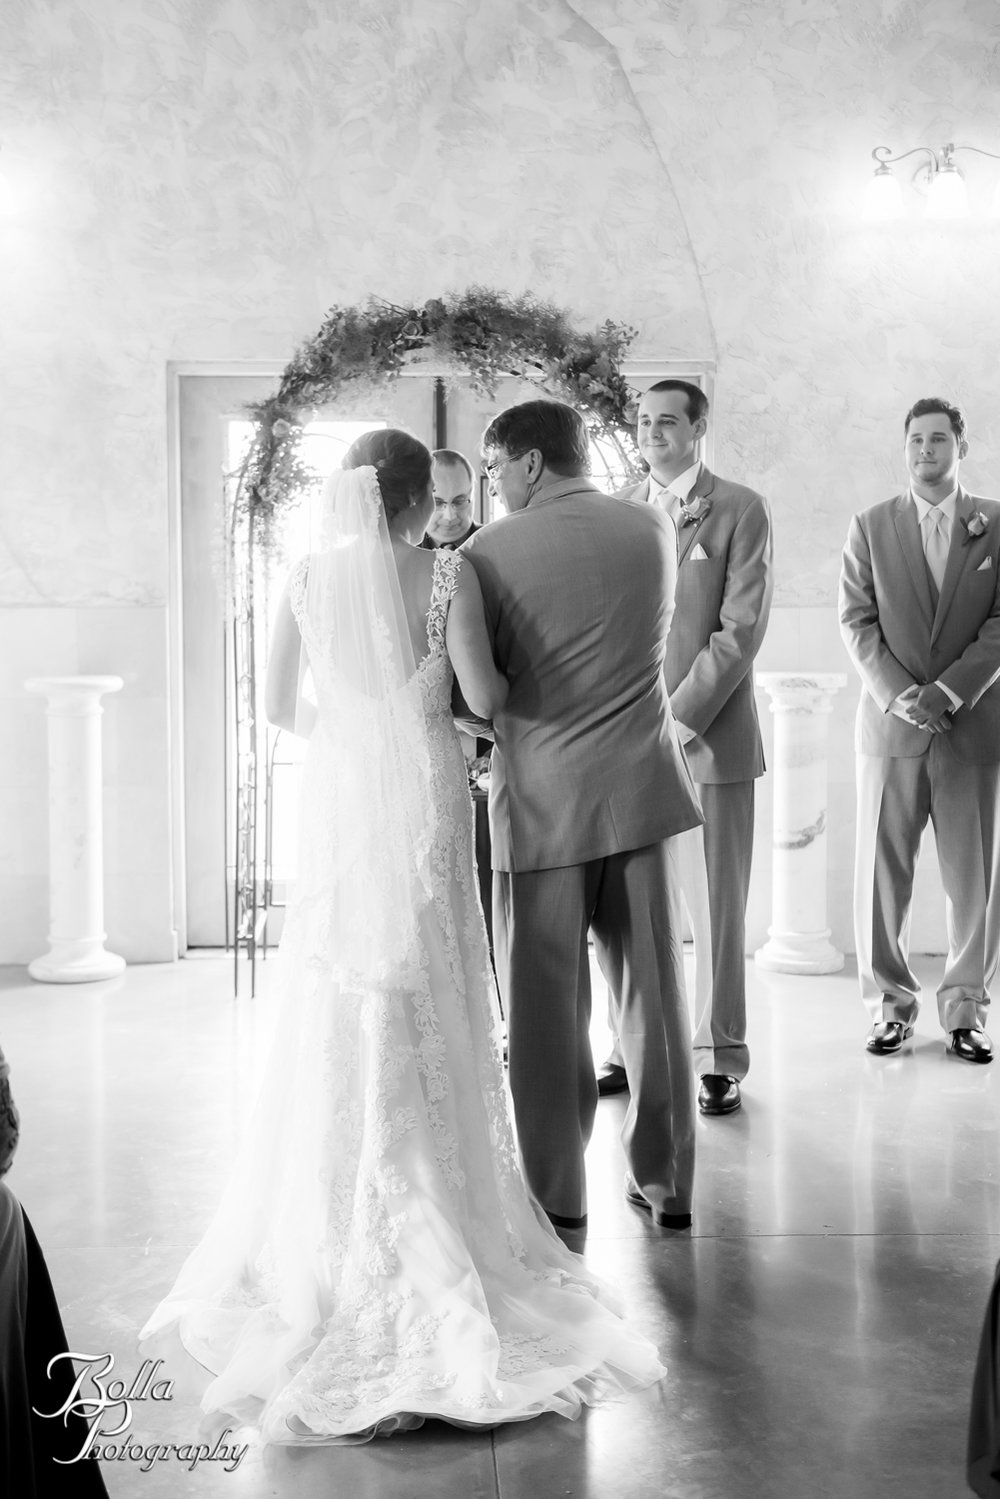 Bolla_Photography_St_Louis_wedding_photographer_Villa_Marie_Winery-0191.jpg